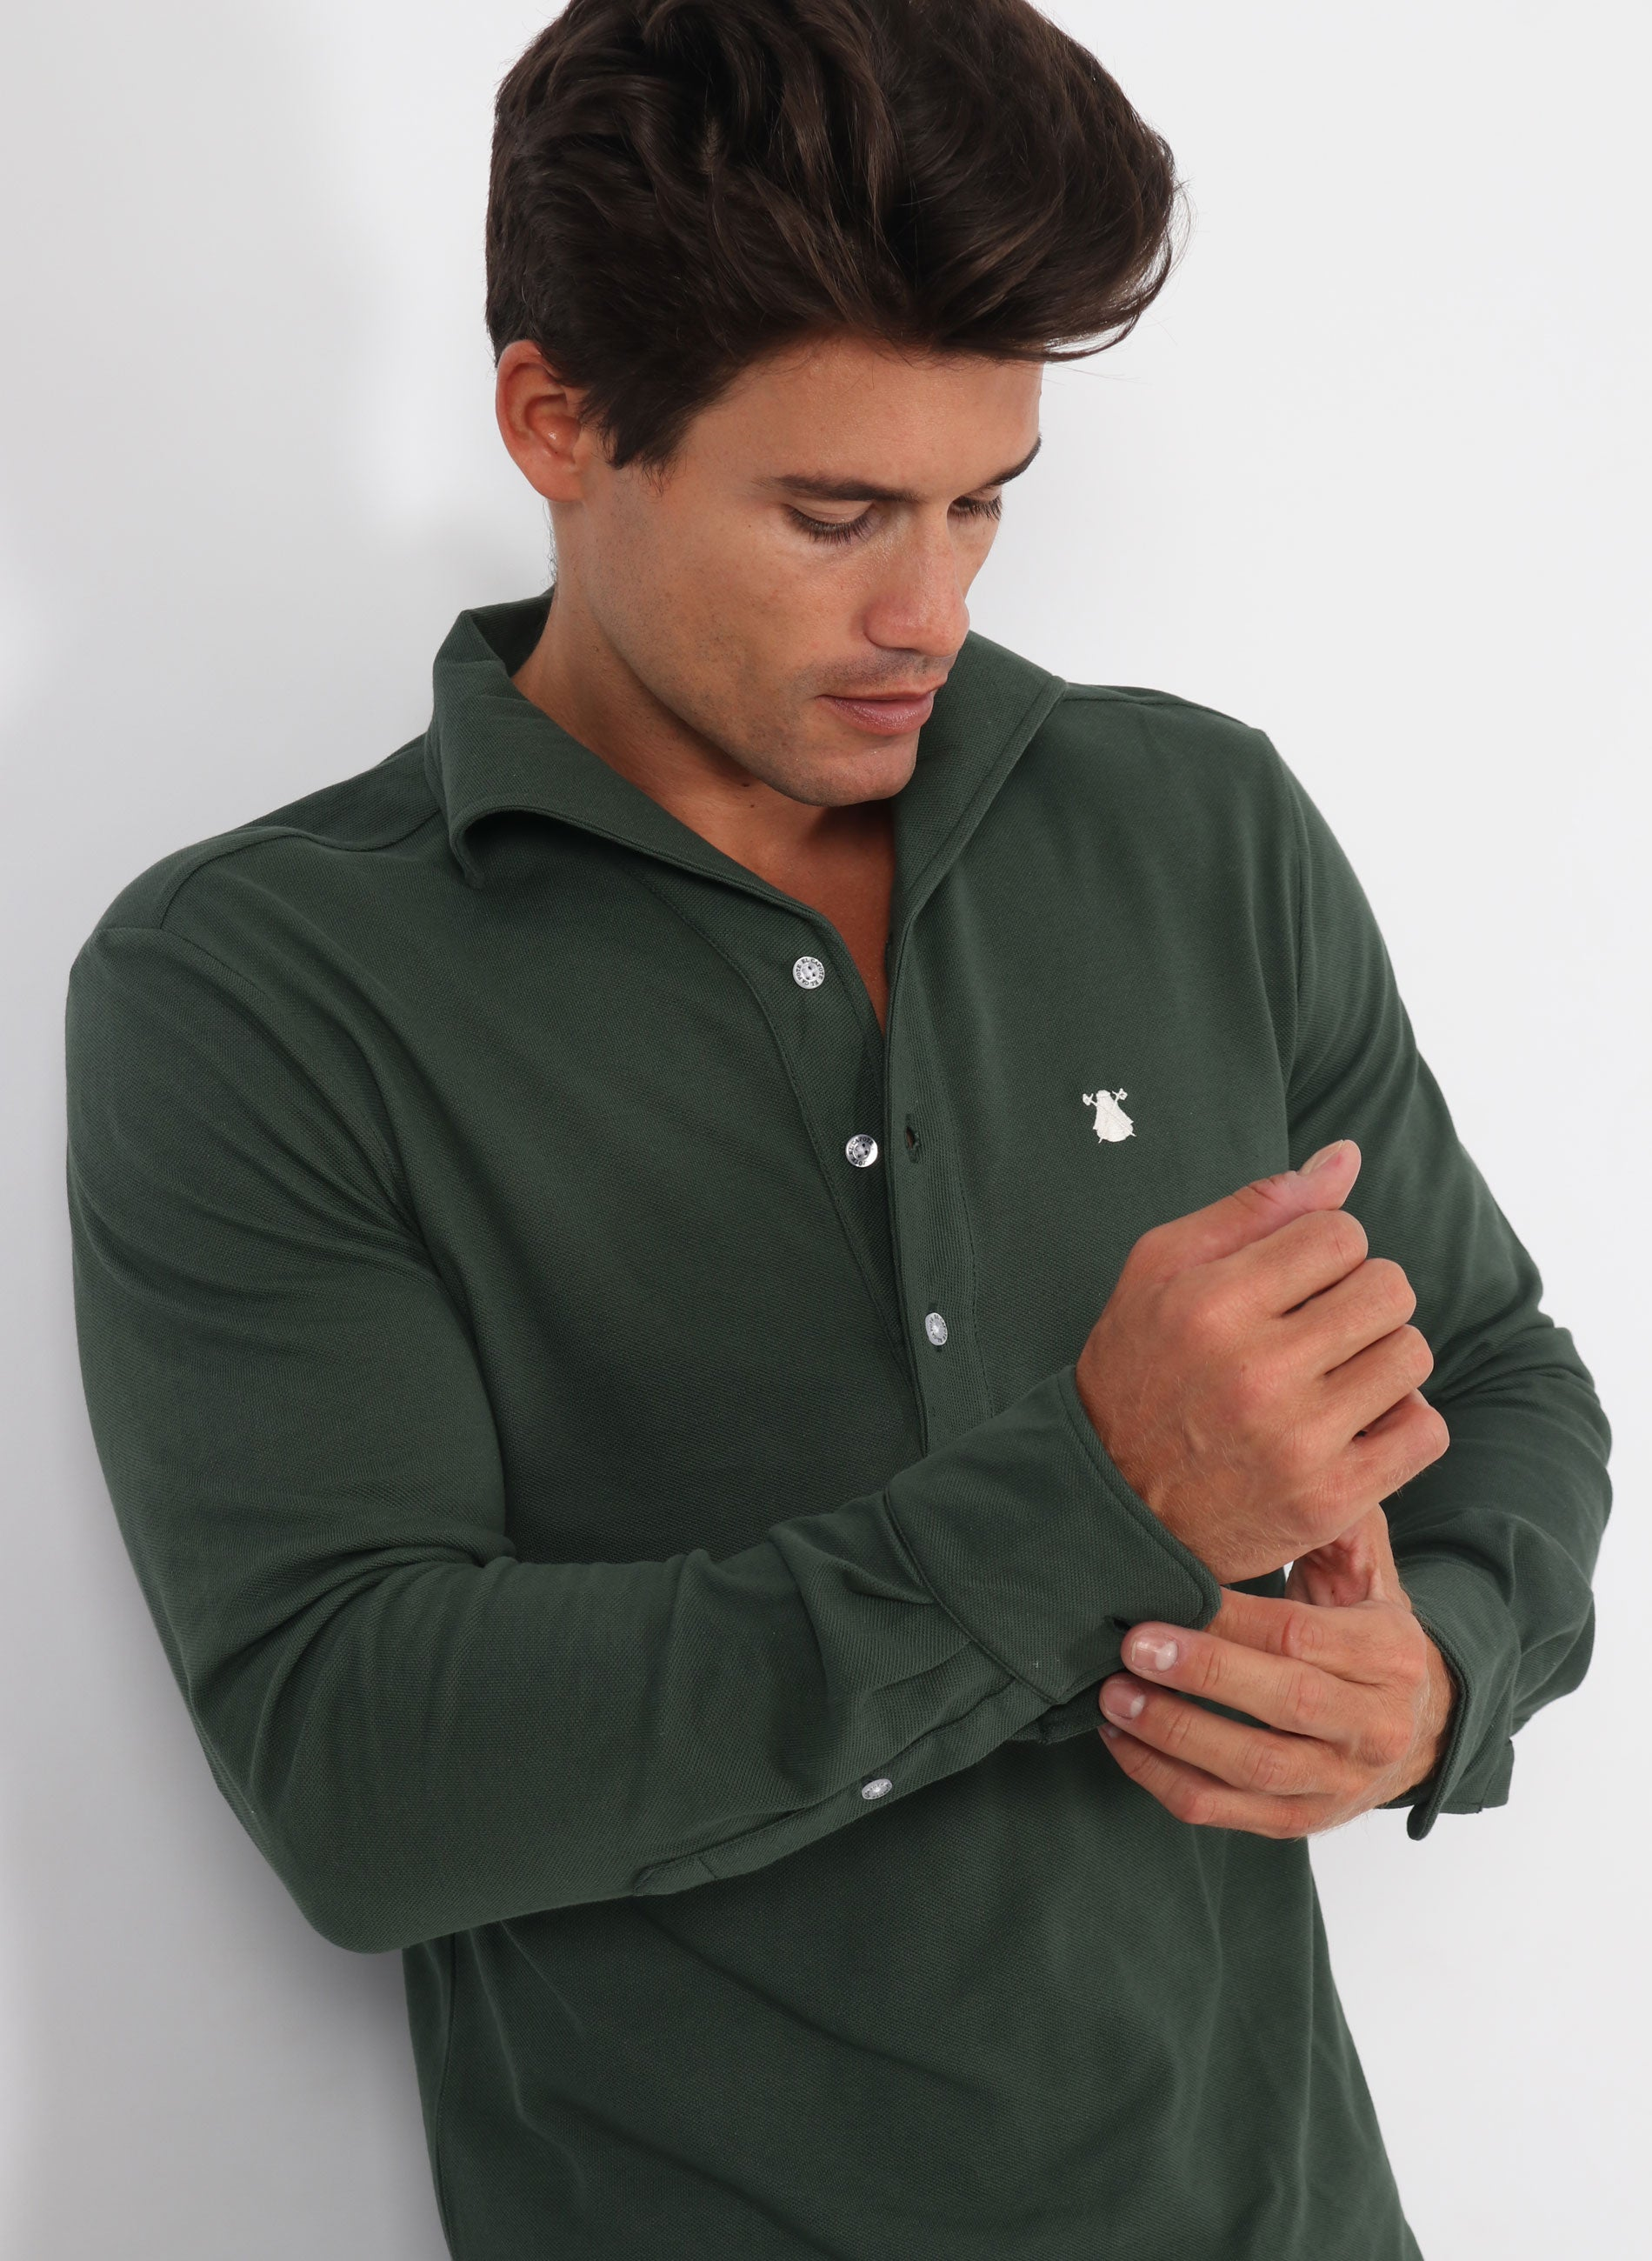 Shirt Shirt Green Collar Condotti